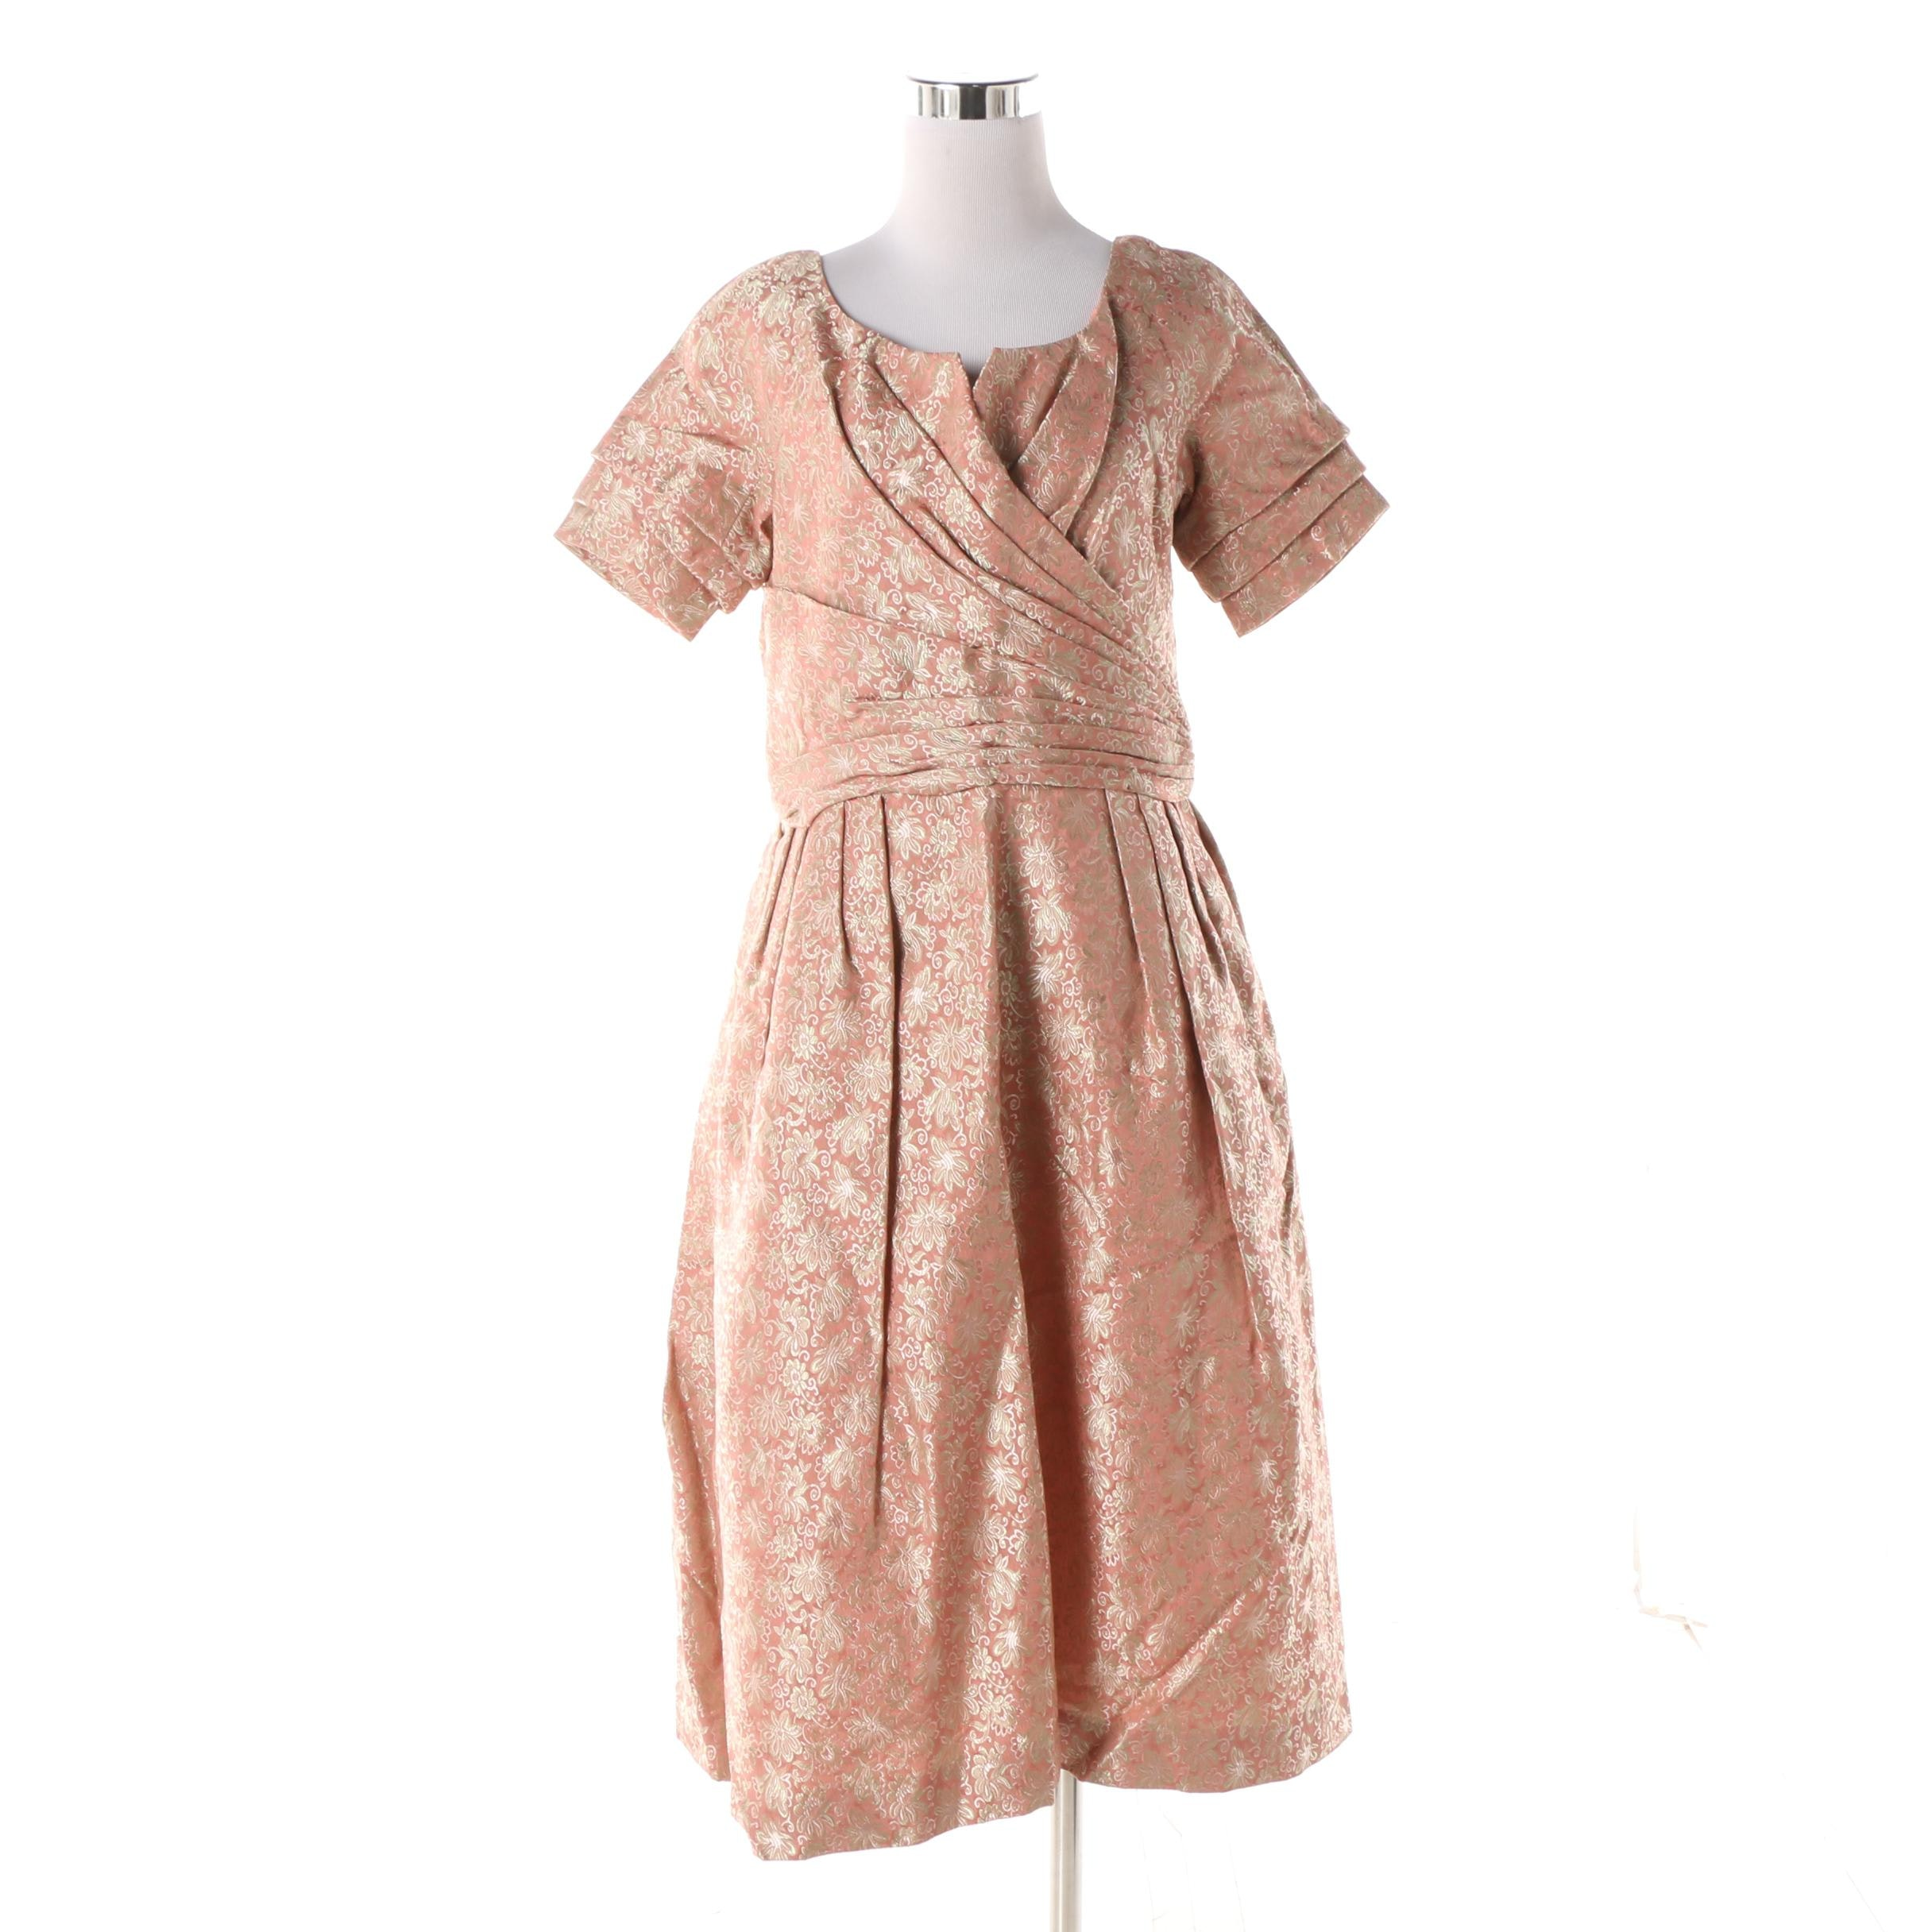 1950s Floral Satin Brocade Cocktail Dress in Pink with Gold